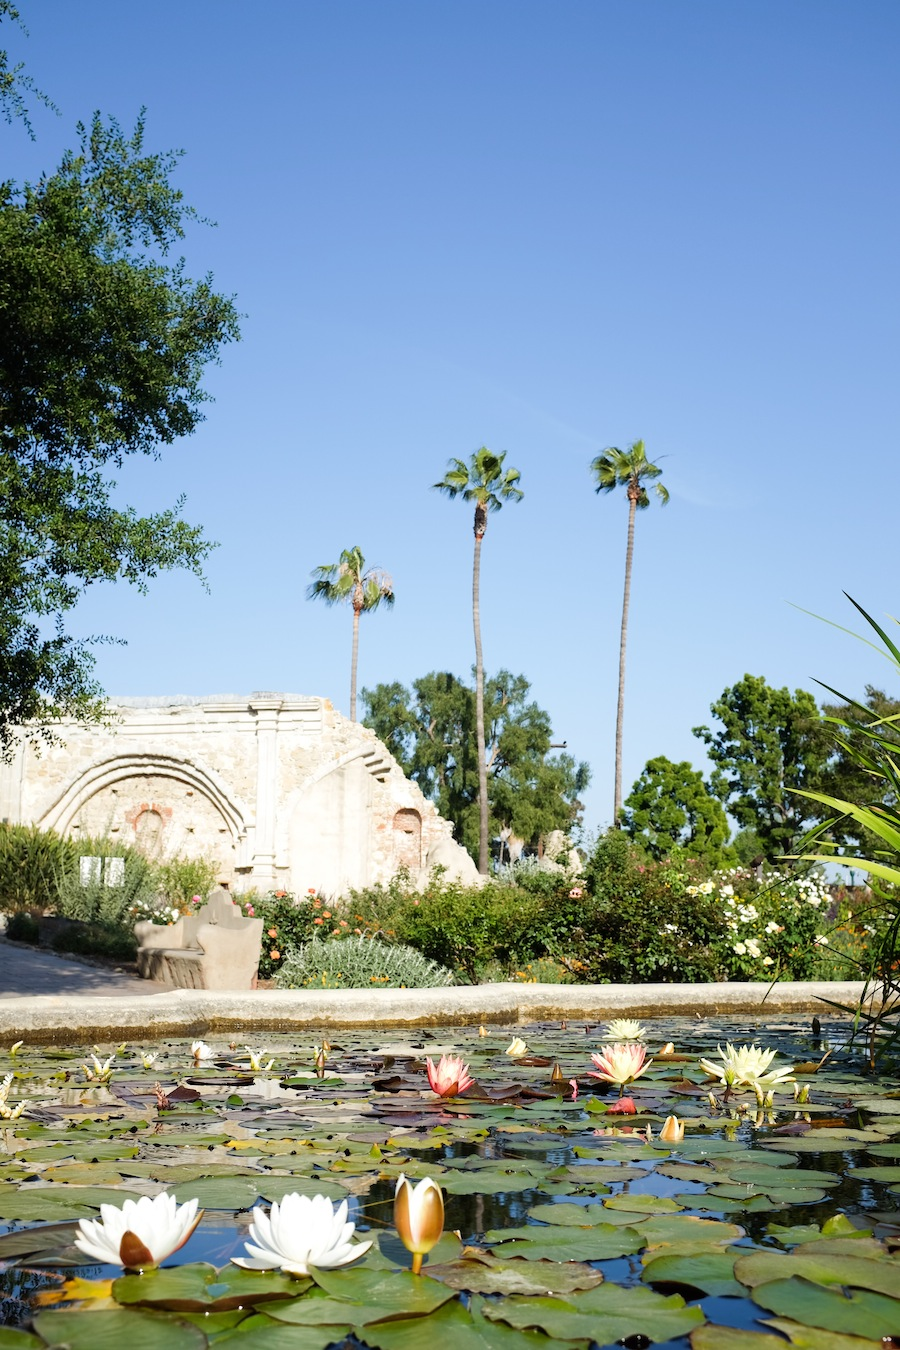 Mission San Juan Capistrano - Legal Miss Sunshine